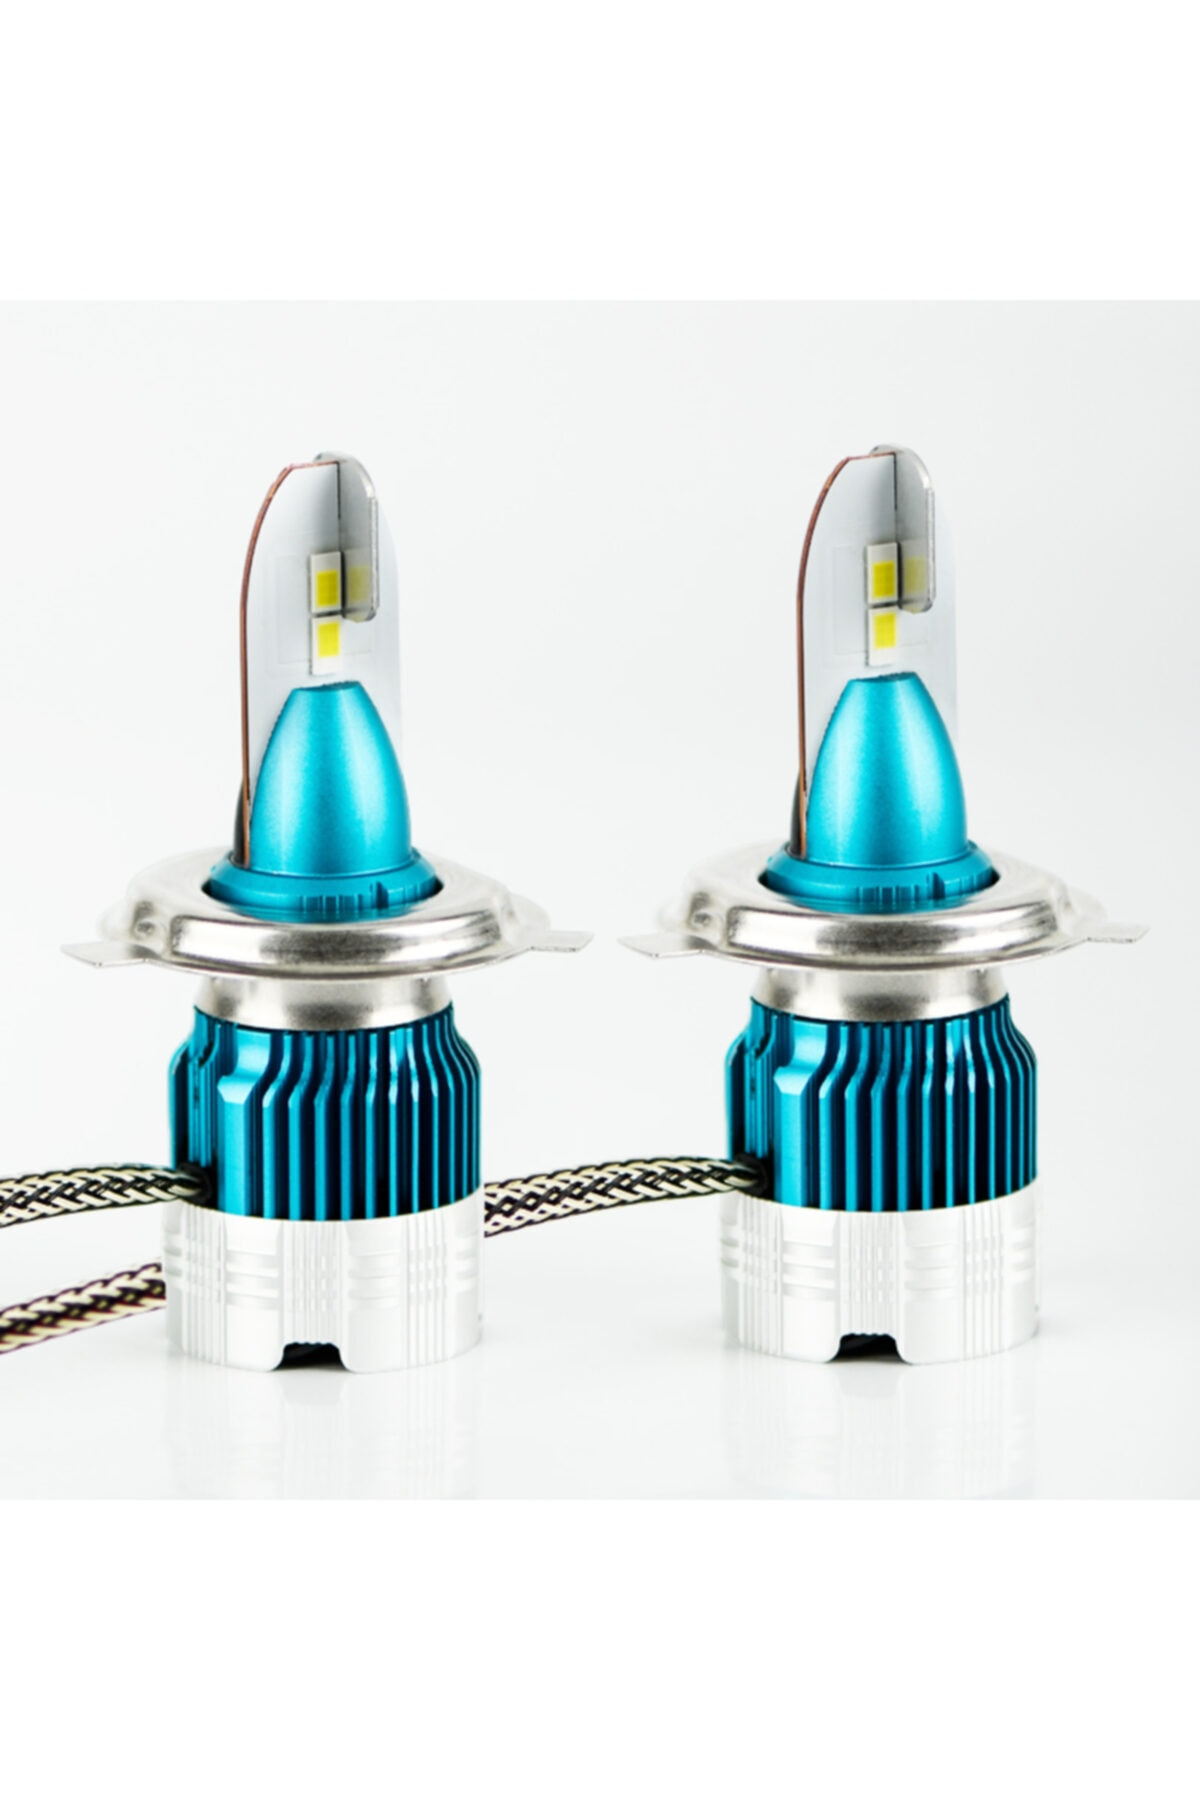 Space Mini2 Csp Led Xenon H4 9600 Lümen 6500k Led Xenon 96w 1